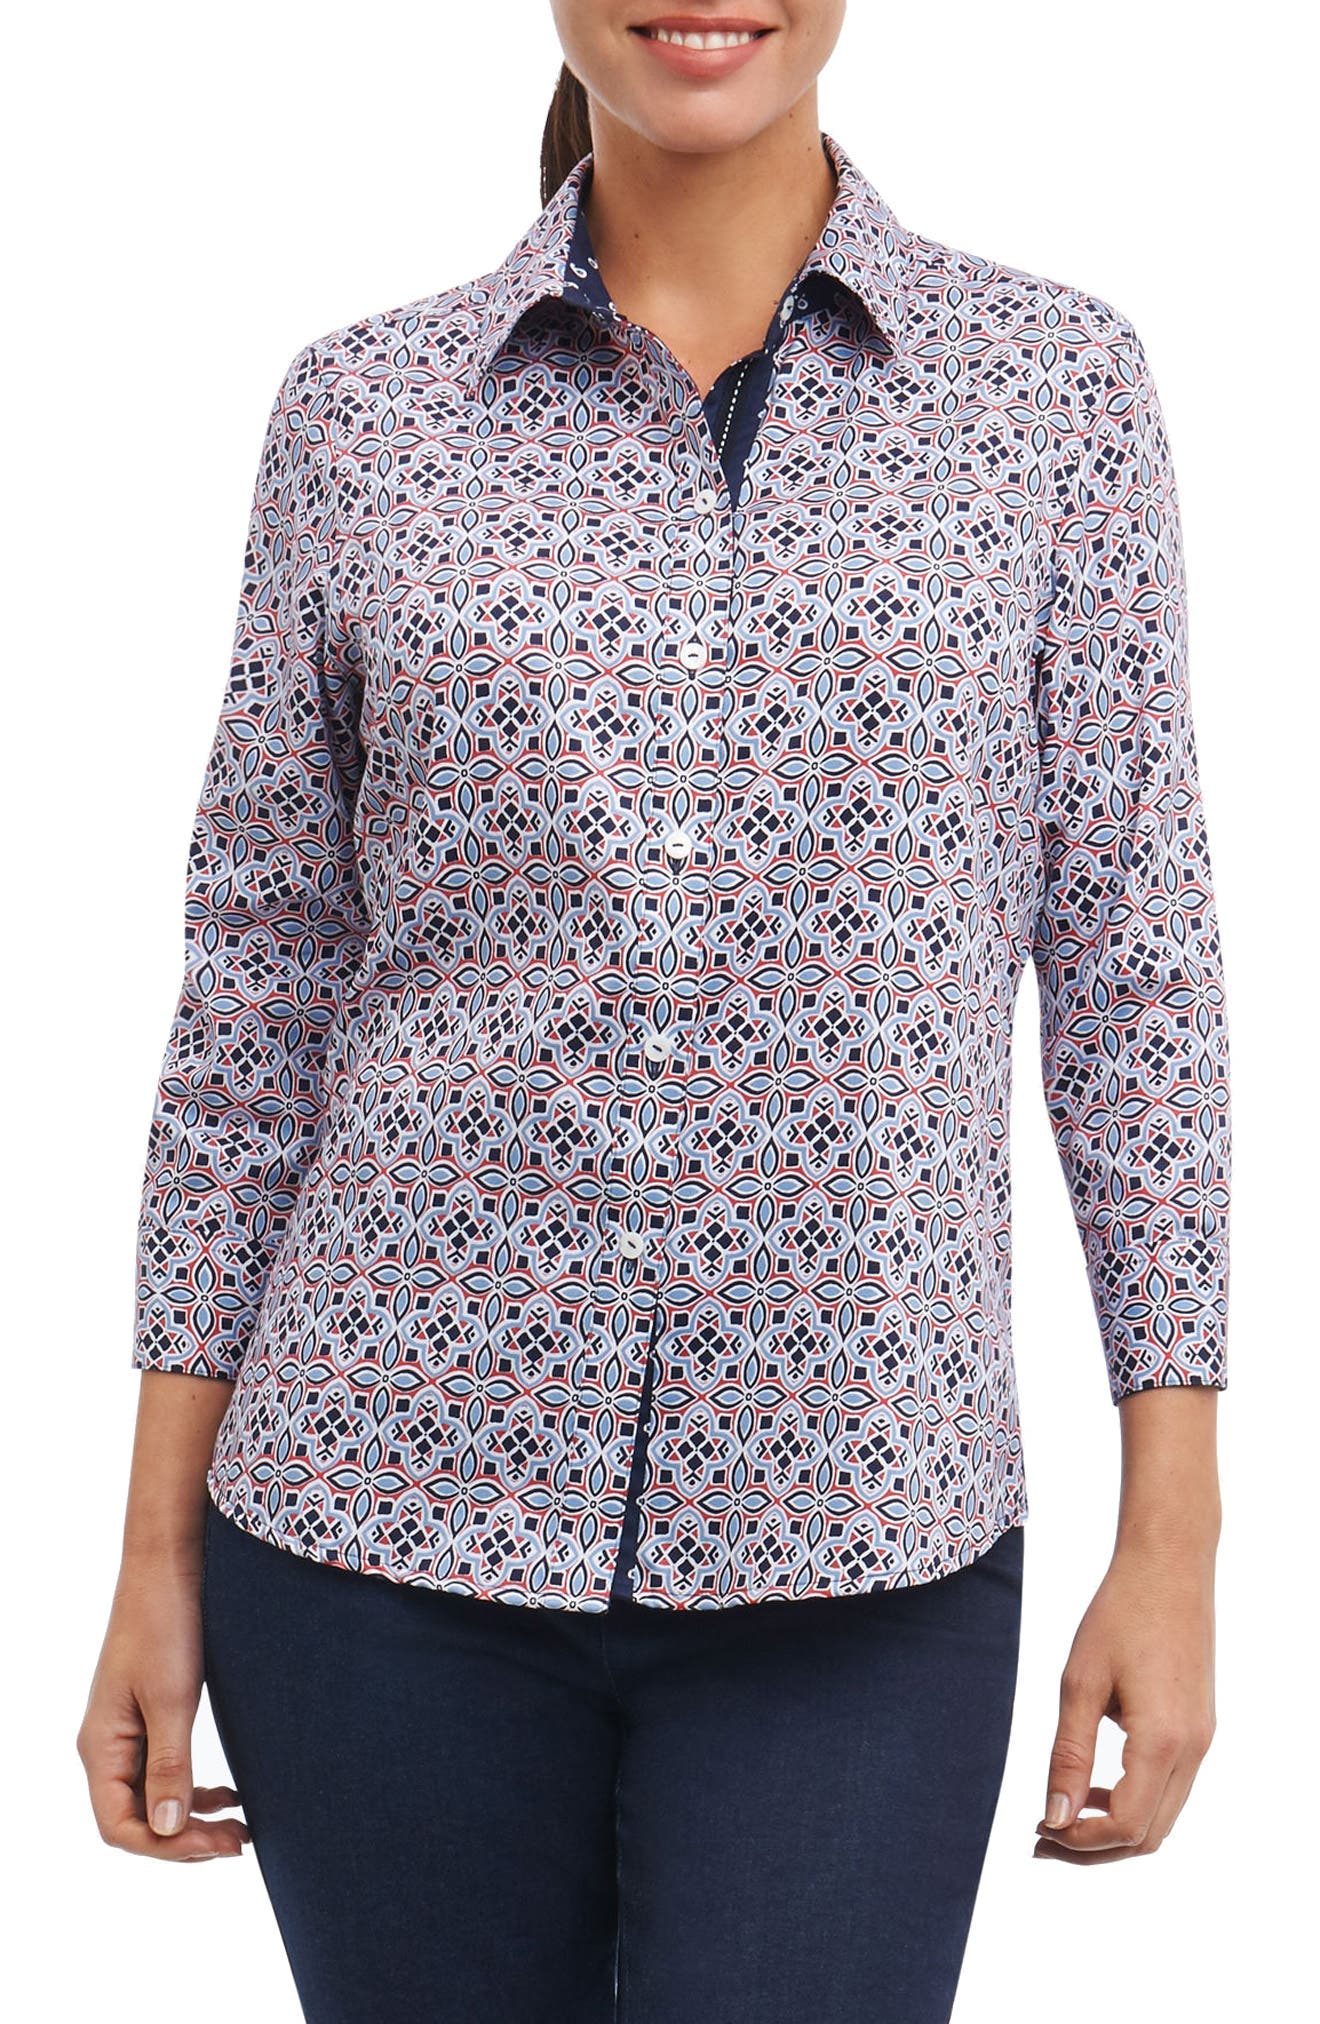 Ava Non-Iron Tile Print Cotton Shirt,                             Alternate thumbnail 2, color,